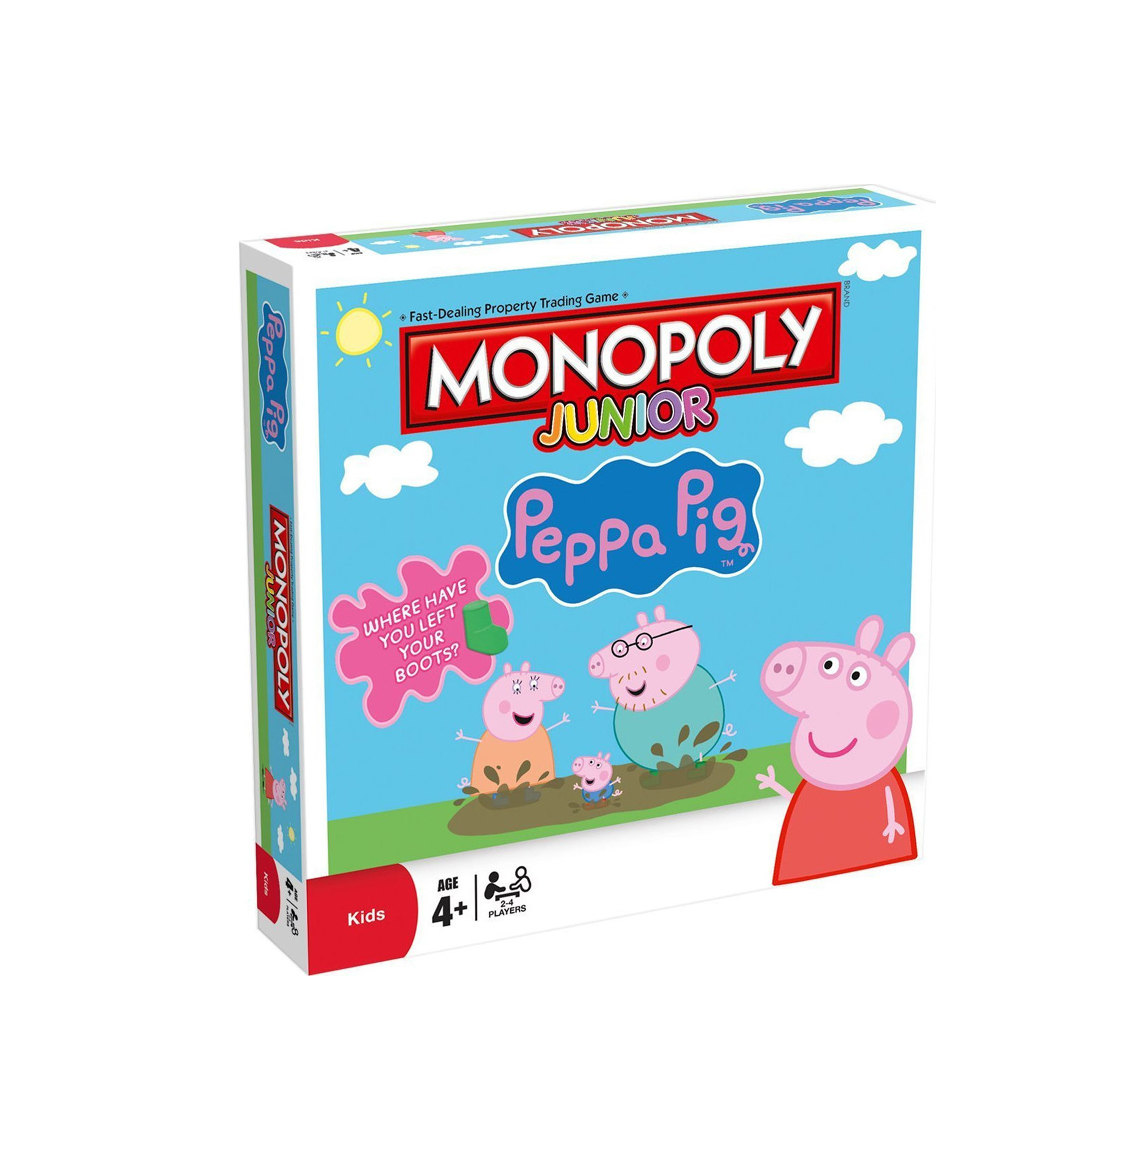 Monopoly Junior Peppa Pig English Edition